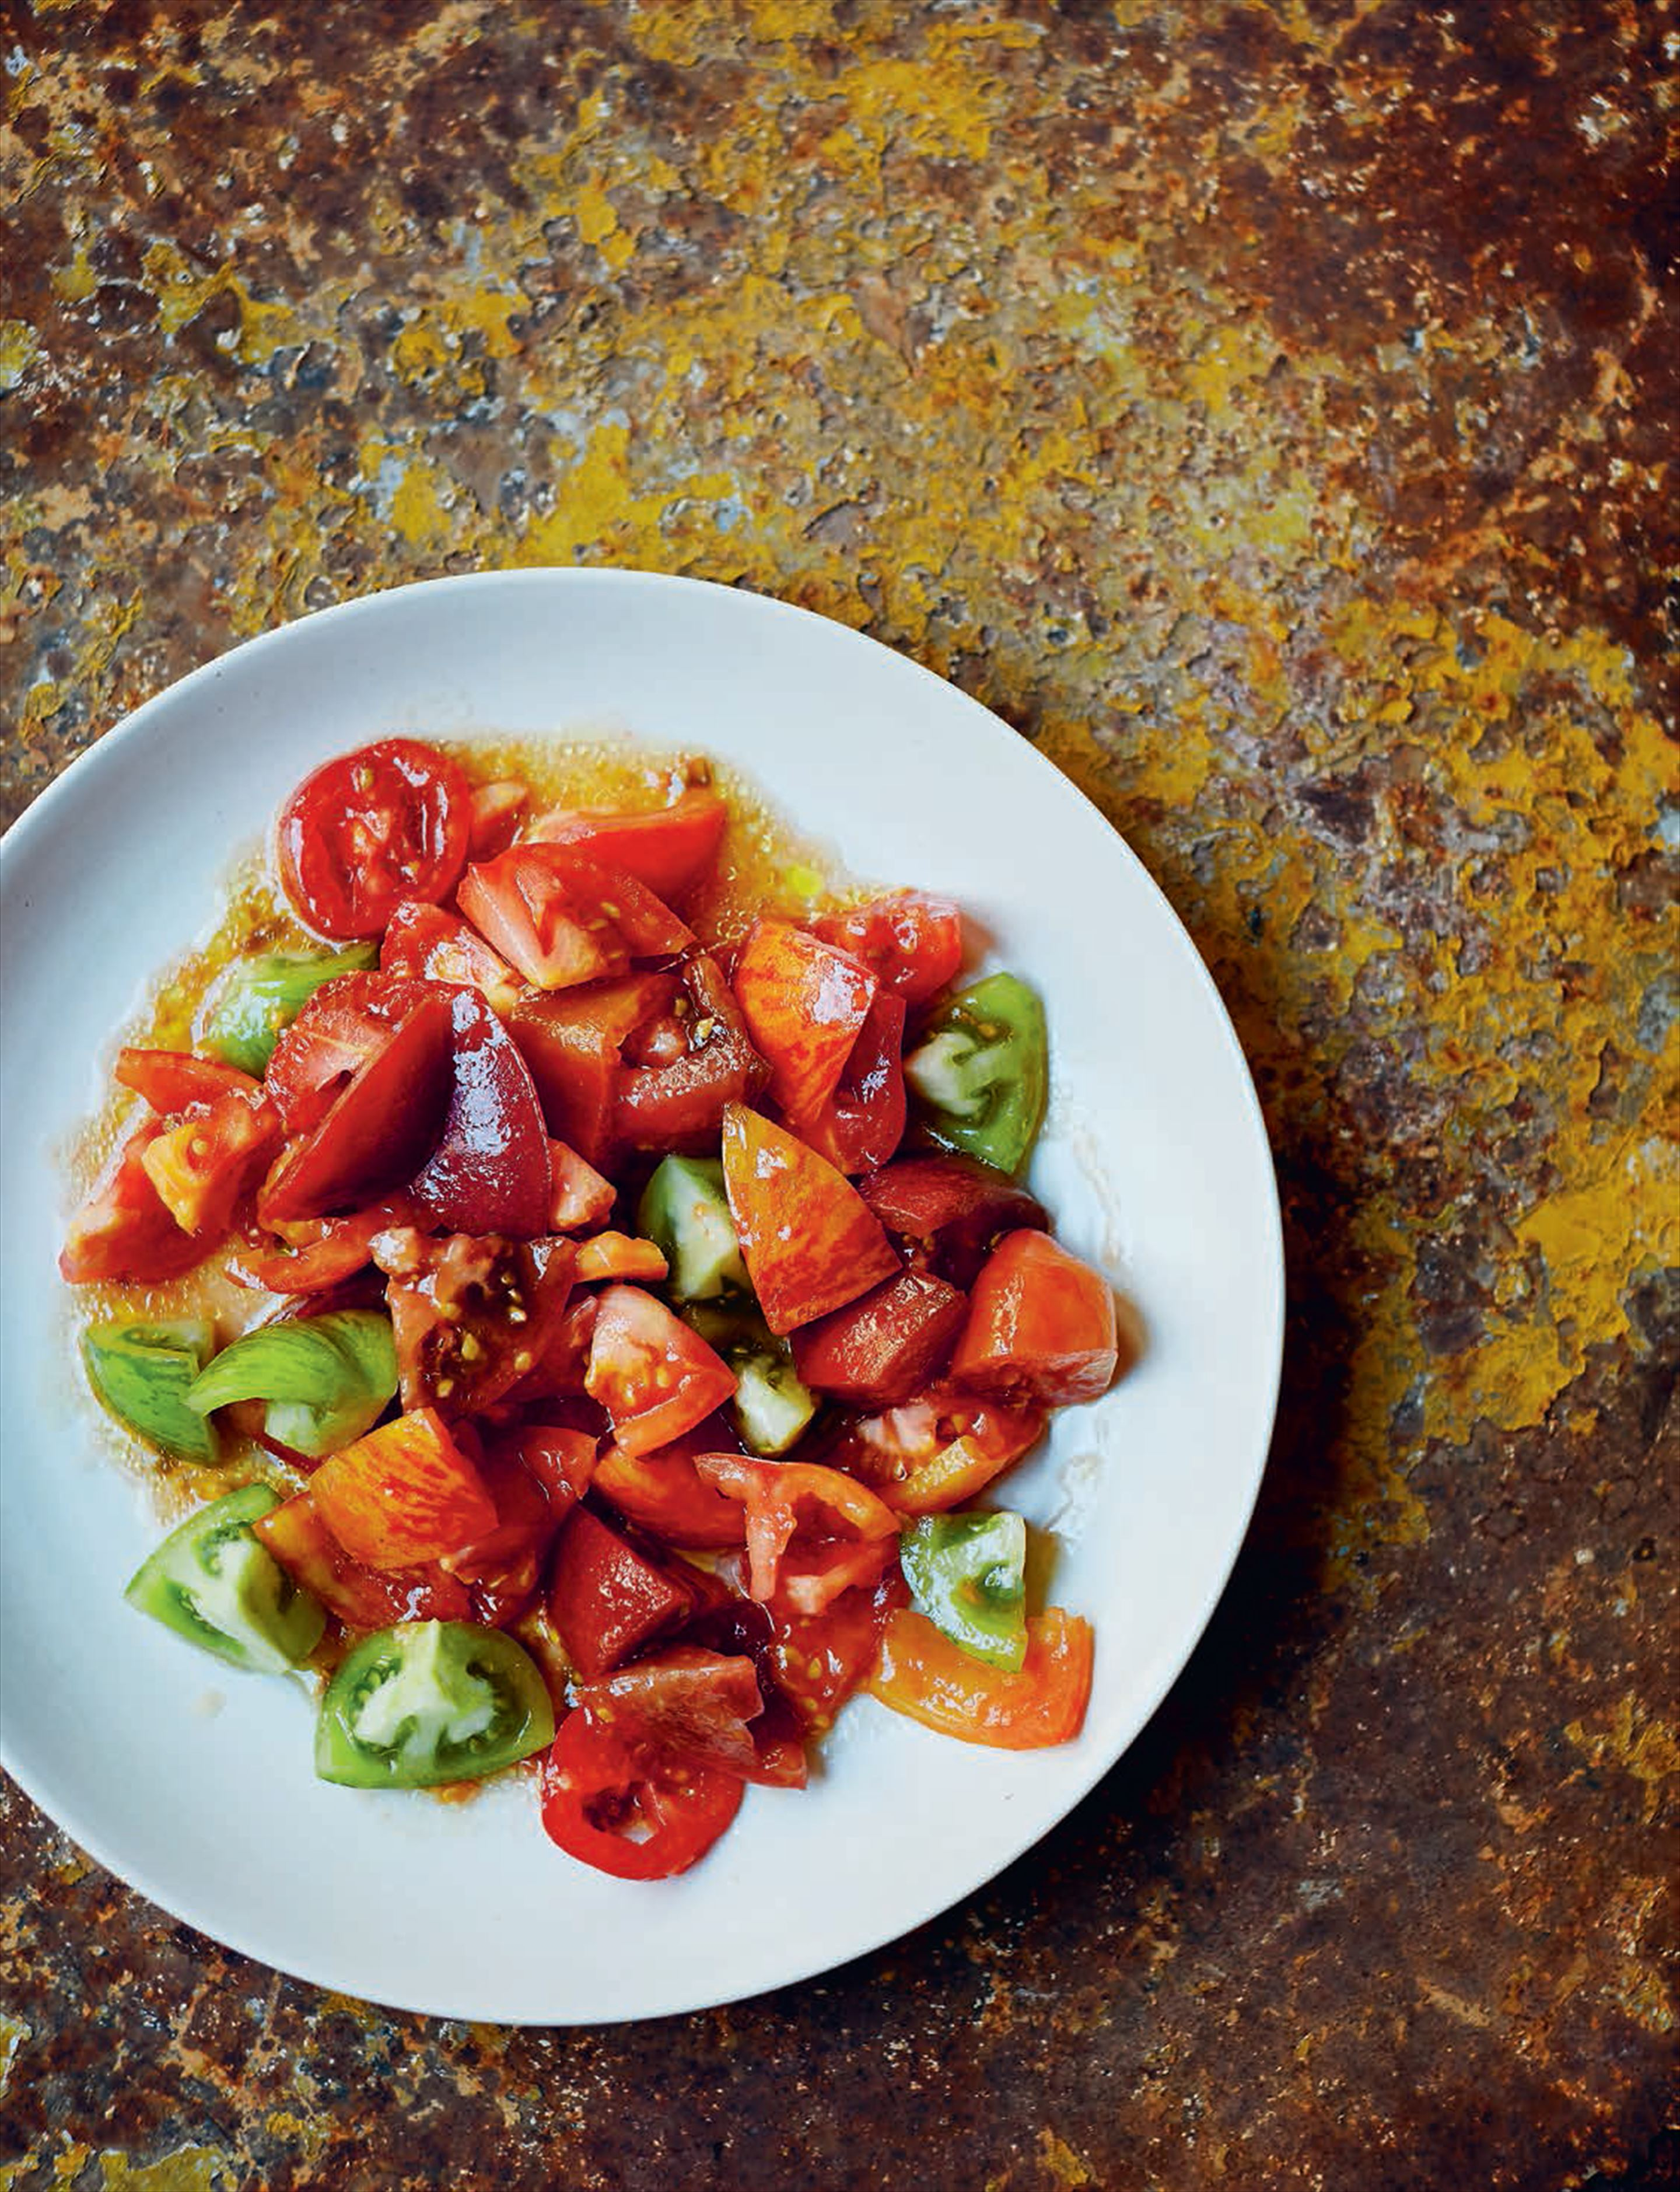 Tomato salad with olive oil